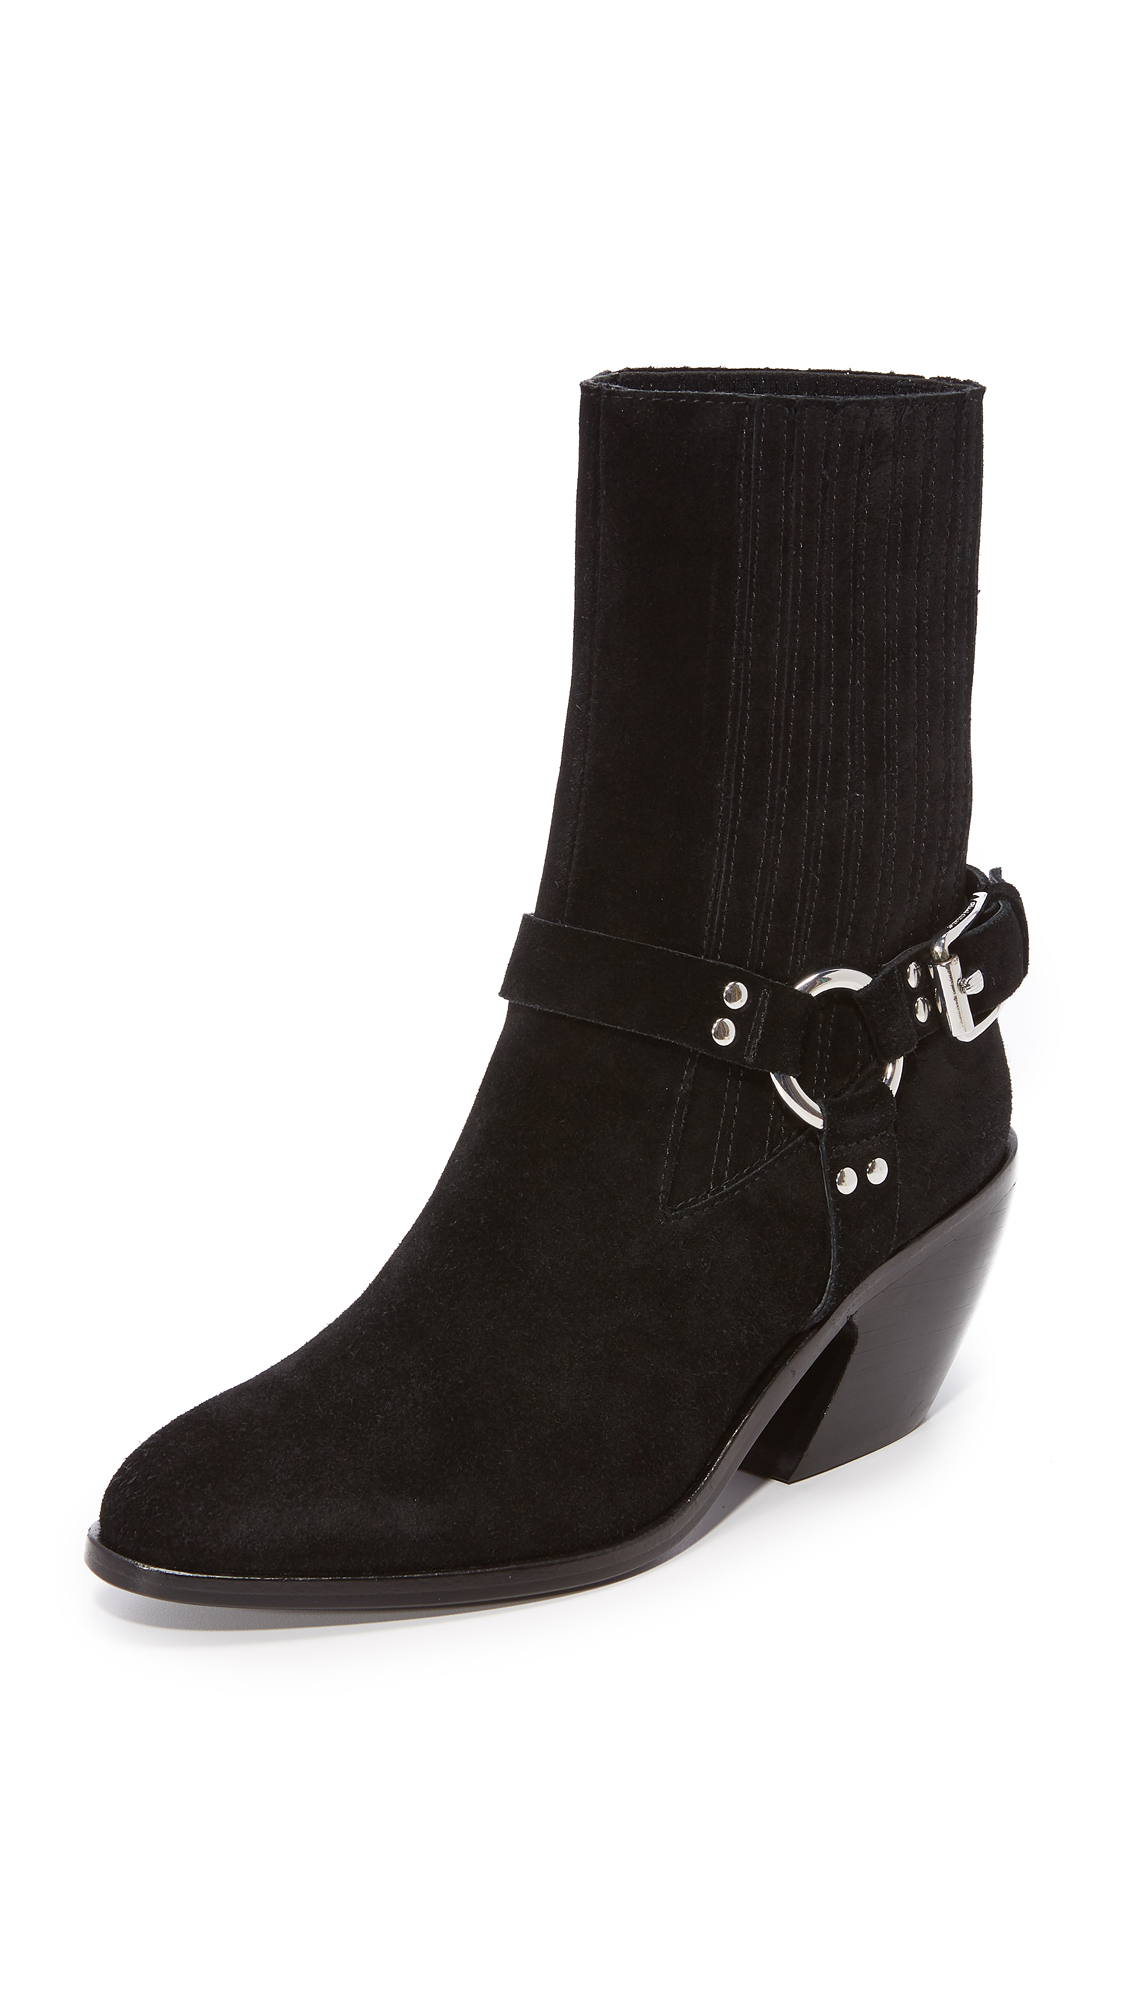 Opening Ceremony Shayenne Suede Harness Ankle Booties - Black